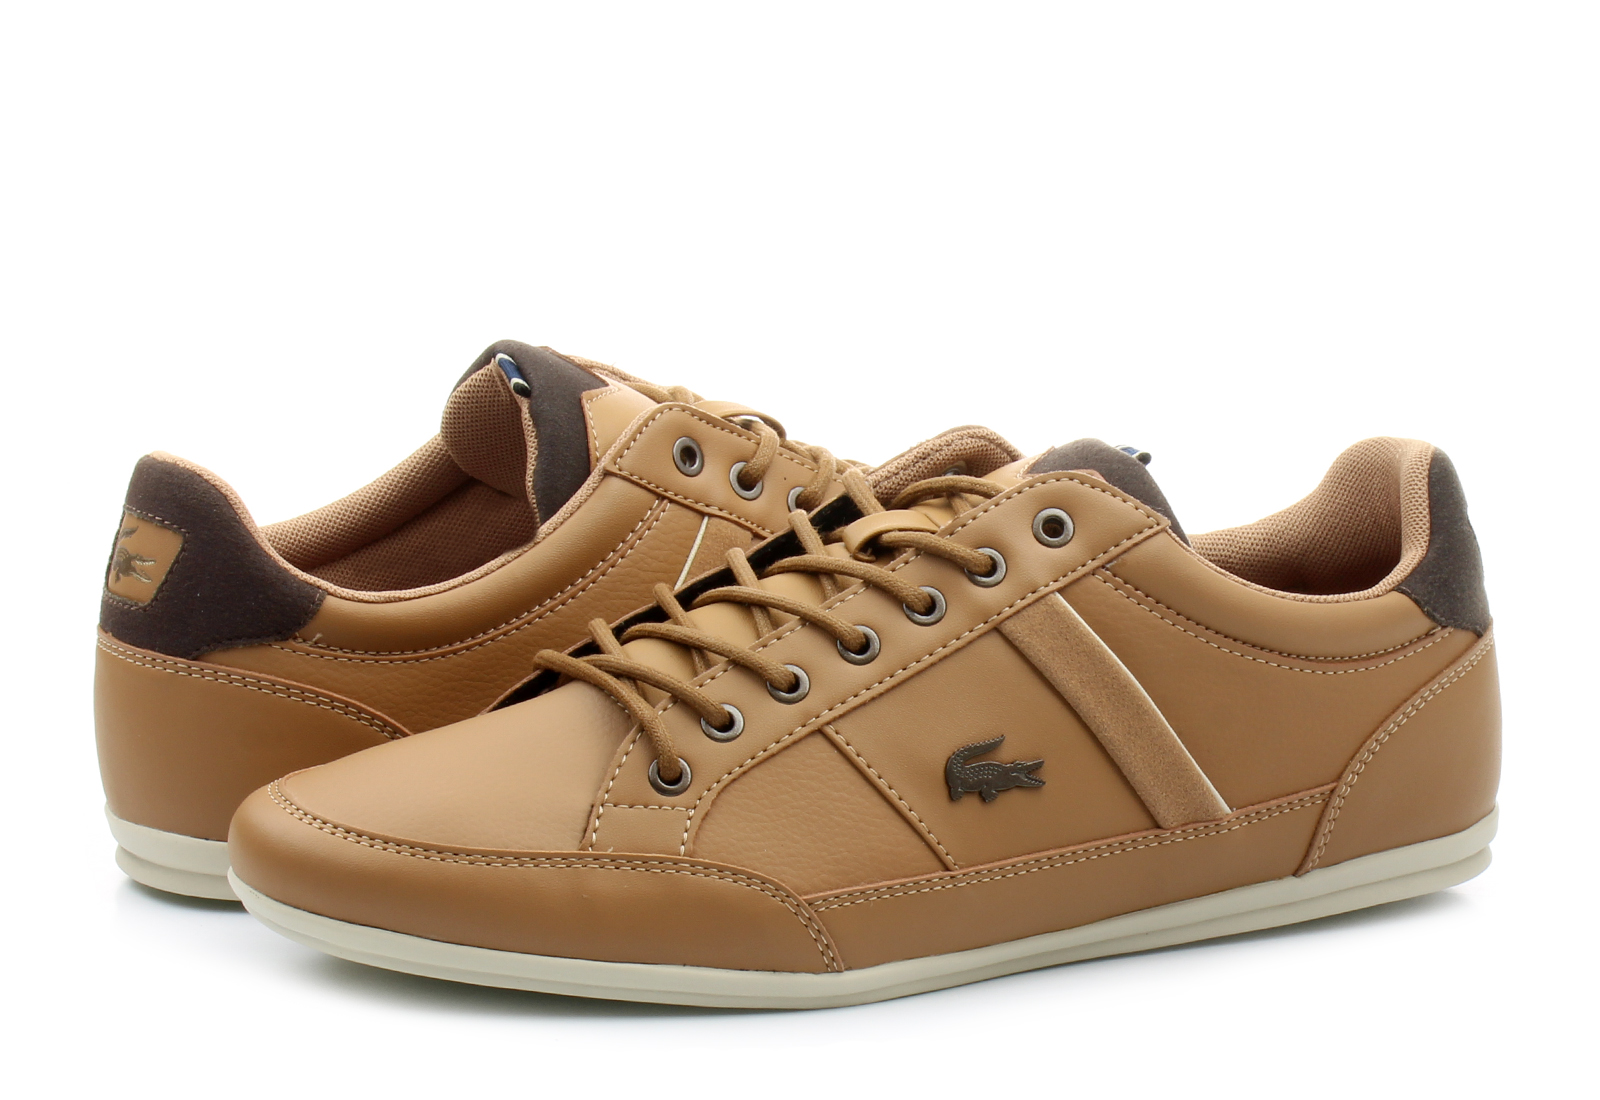 c3c59c2d2bafc2 Lacoste Shoes - Chaymon 118 2 - 181cam0012-2b1 - Online shop for ...